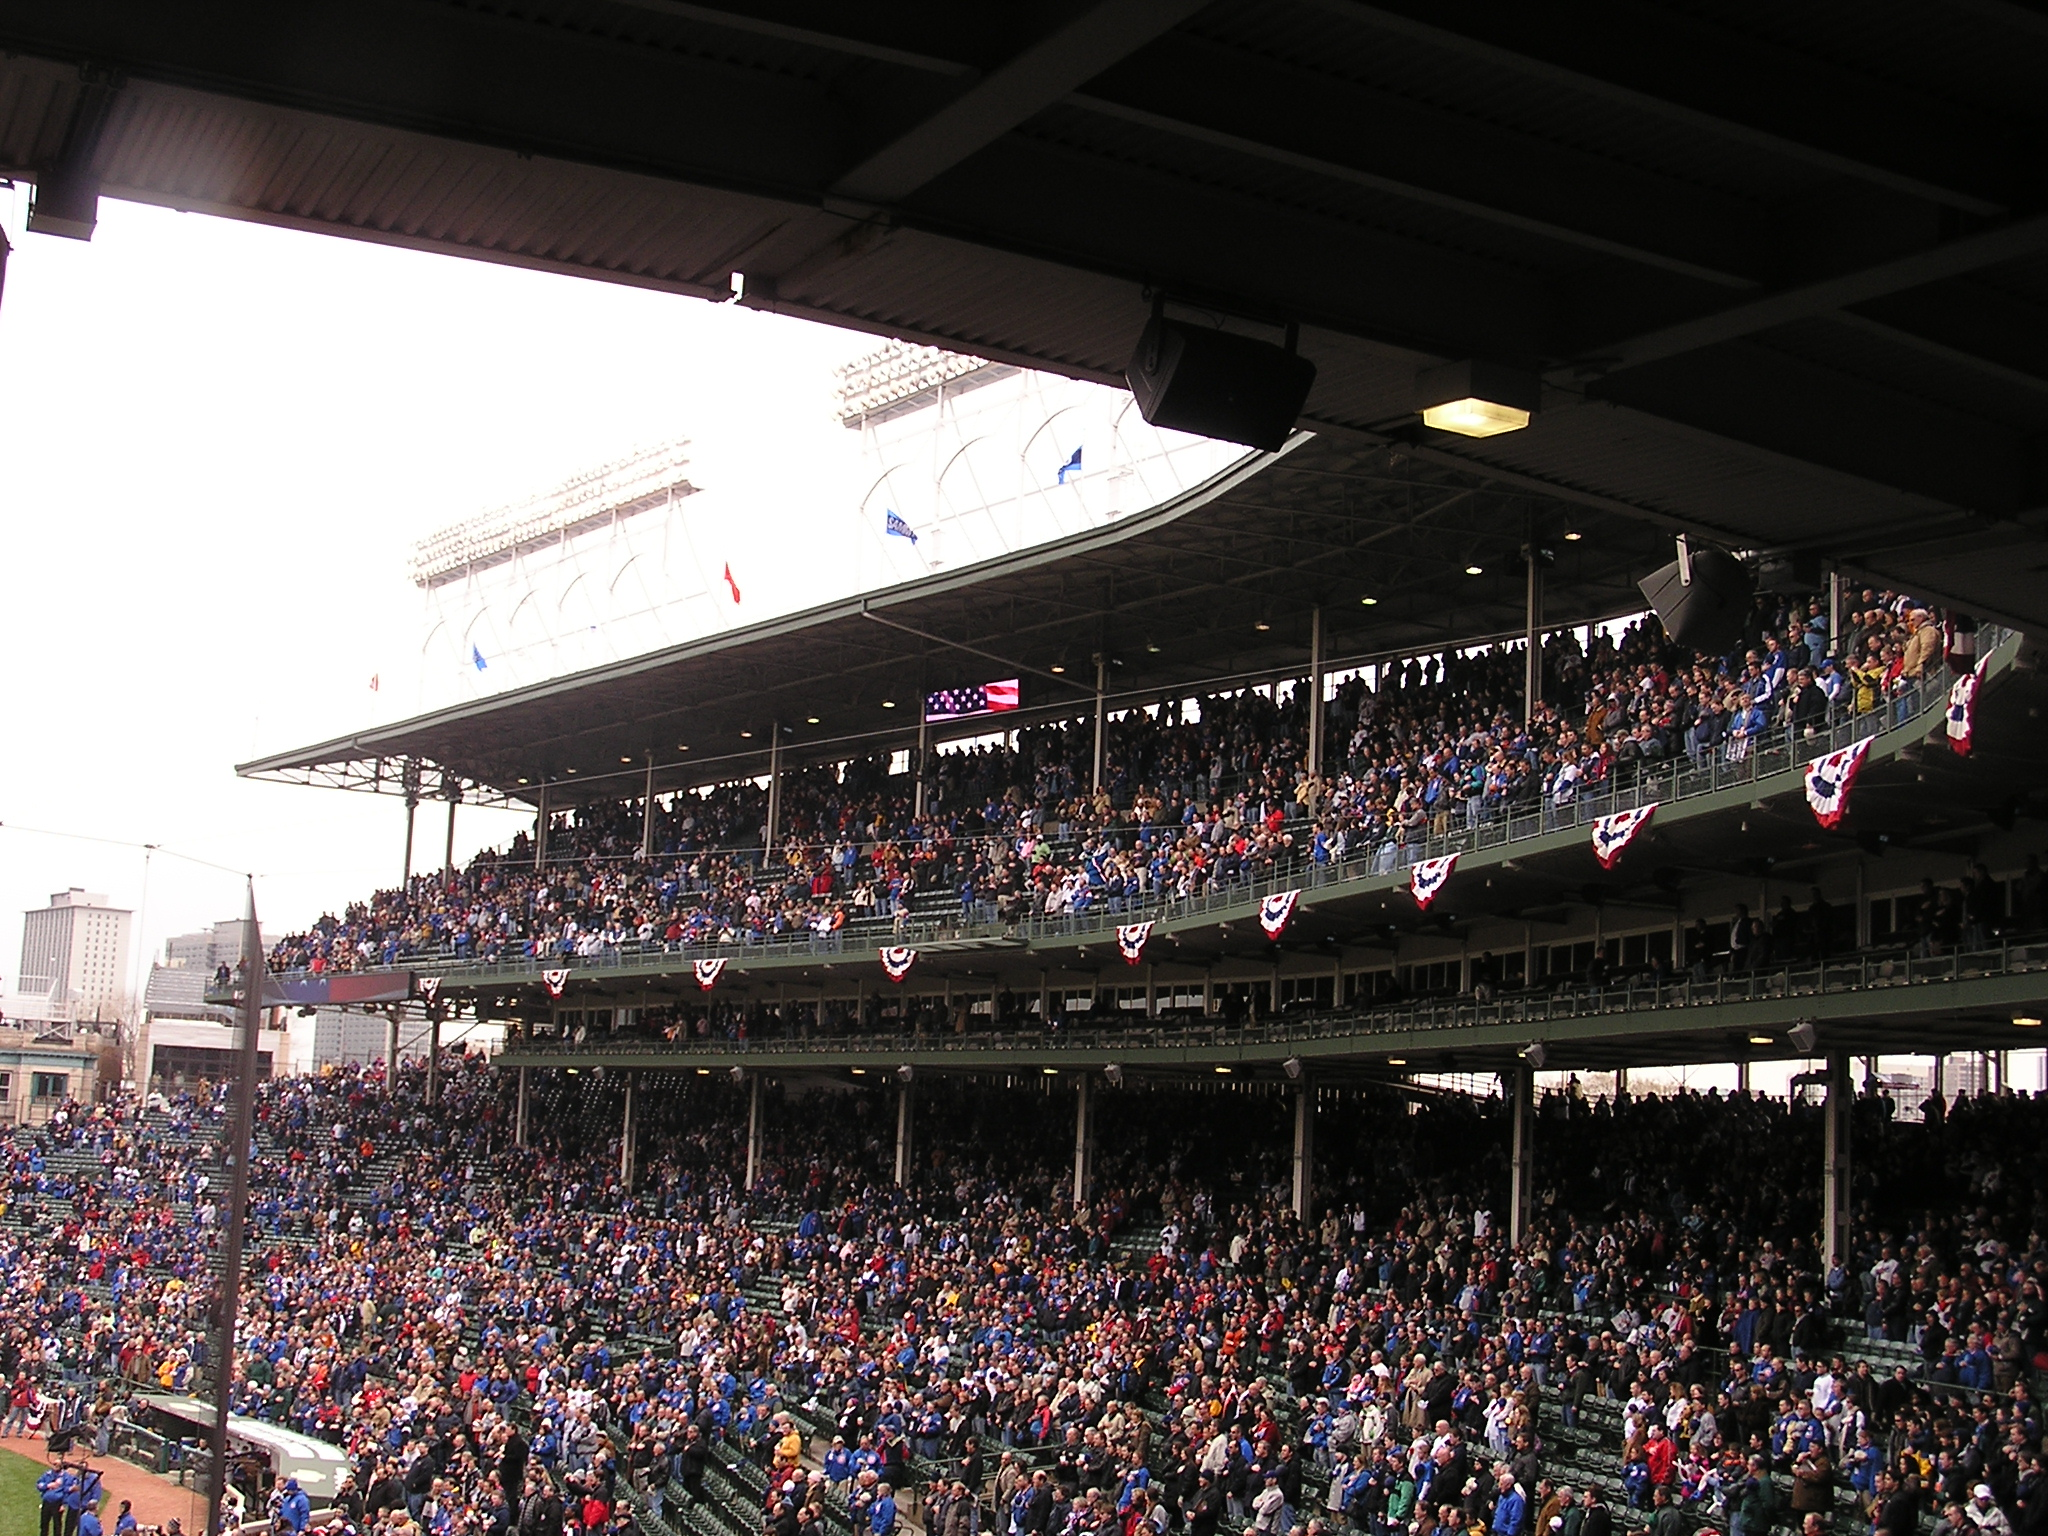 1st BASE STANDS - Wrigley Field, Chicago, Il